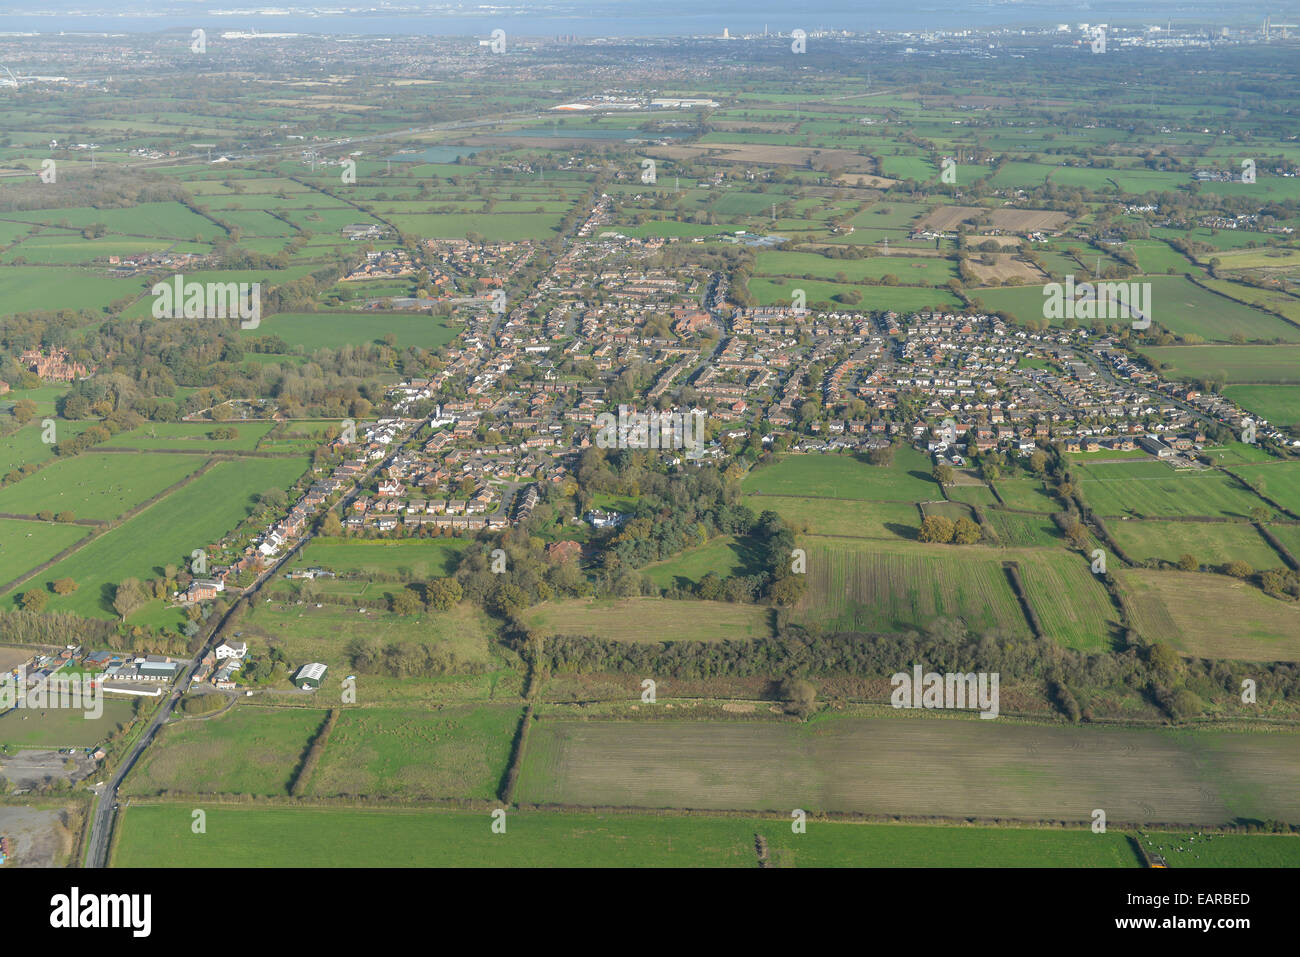 An aerial view of the Cheshire village of Saughall and surrounding countryside - Stock Image